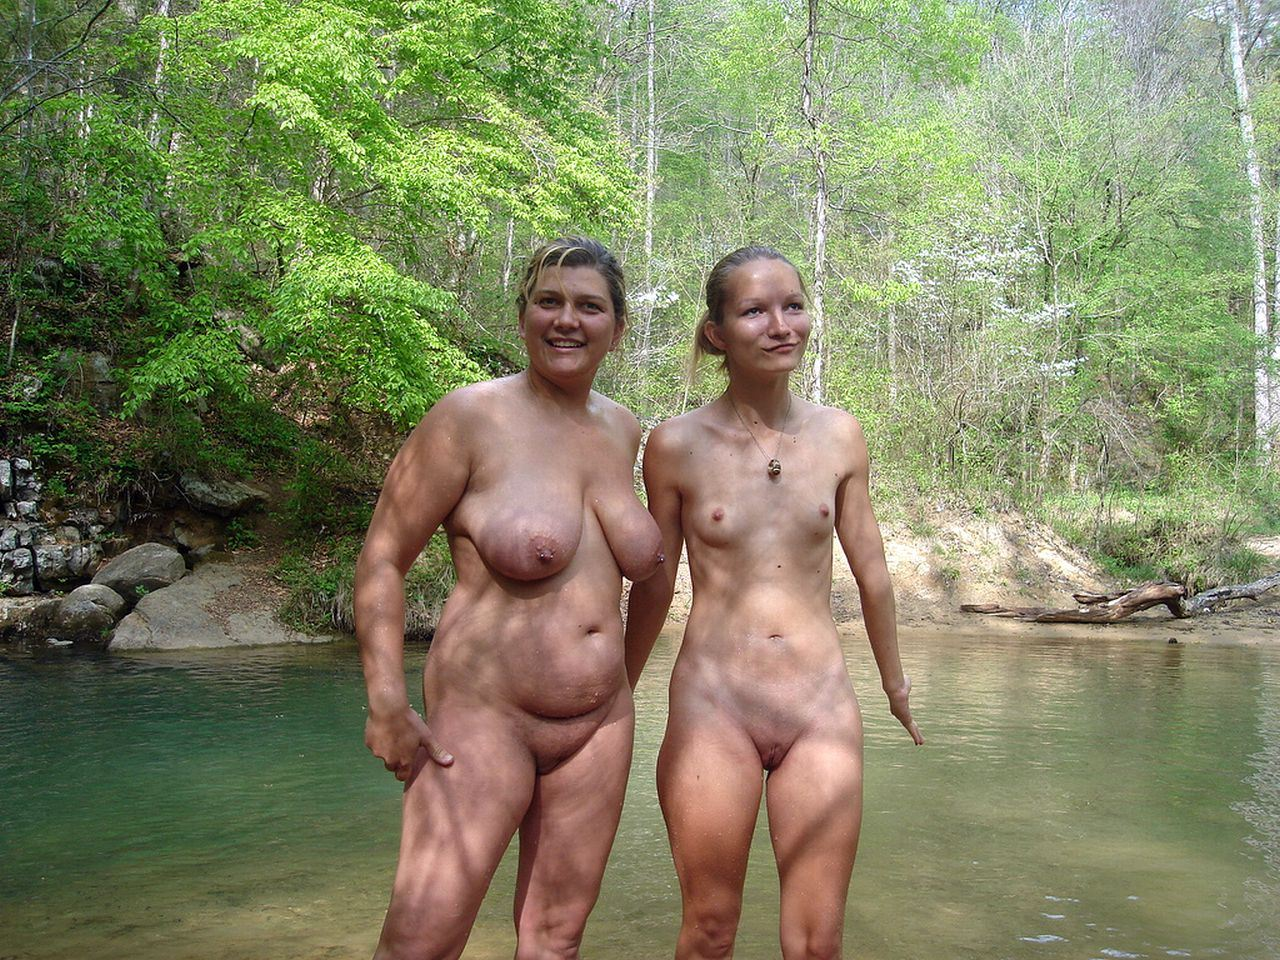 nudism Nudist world family